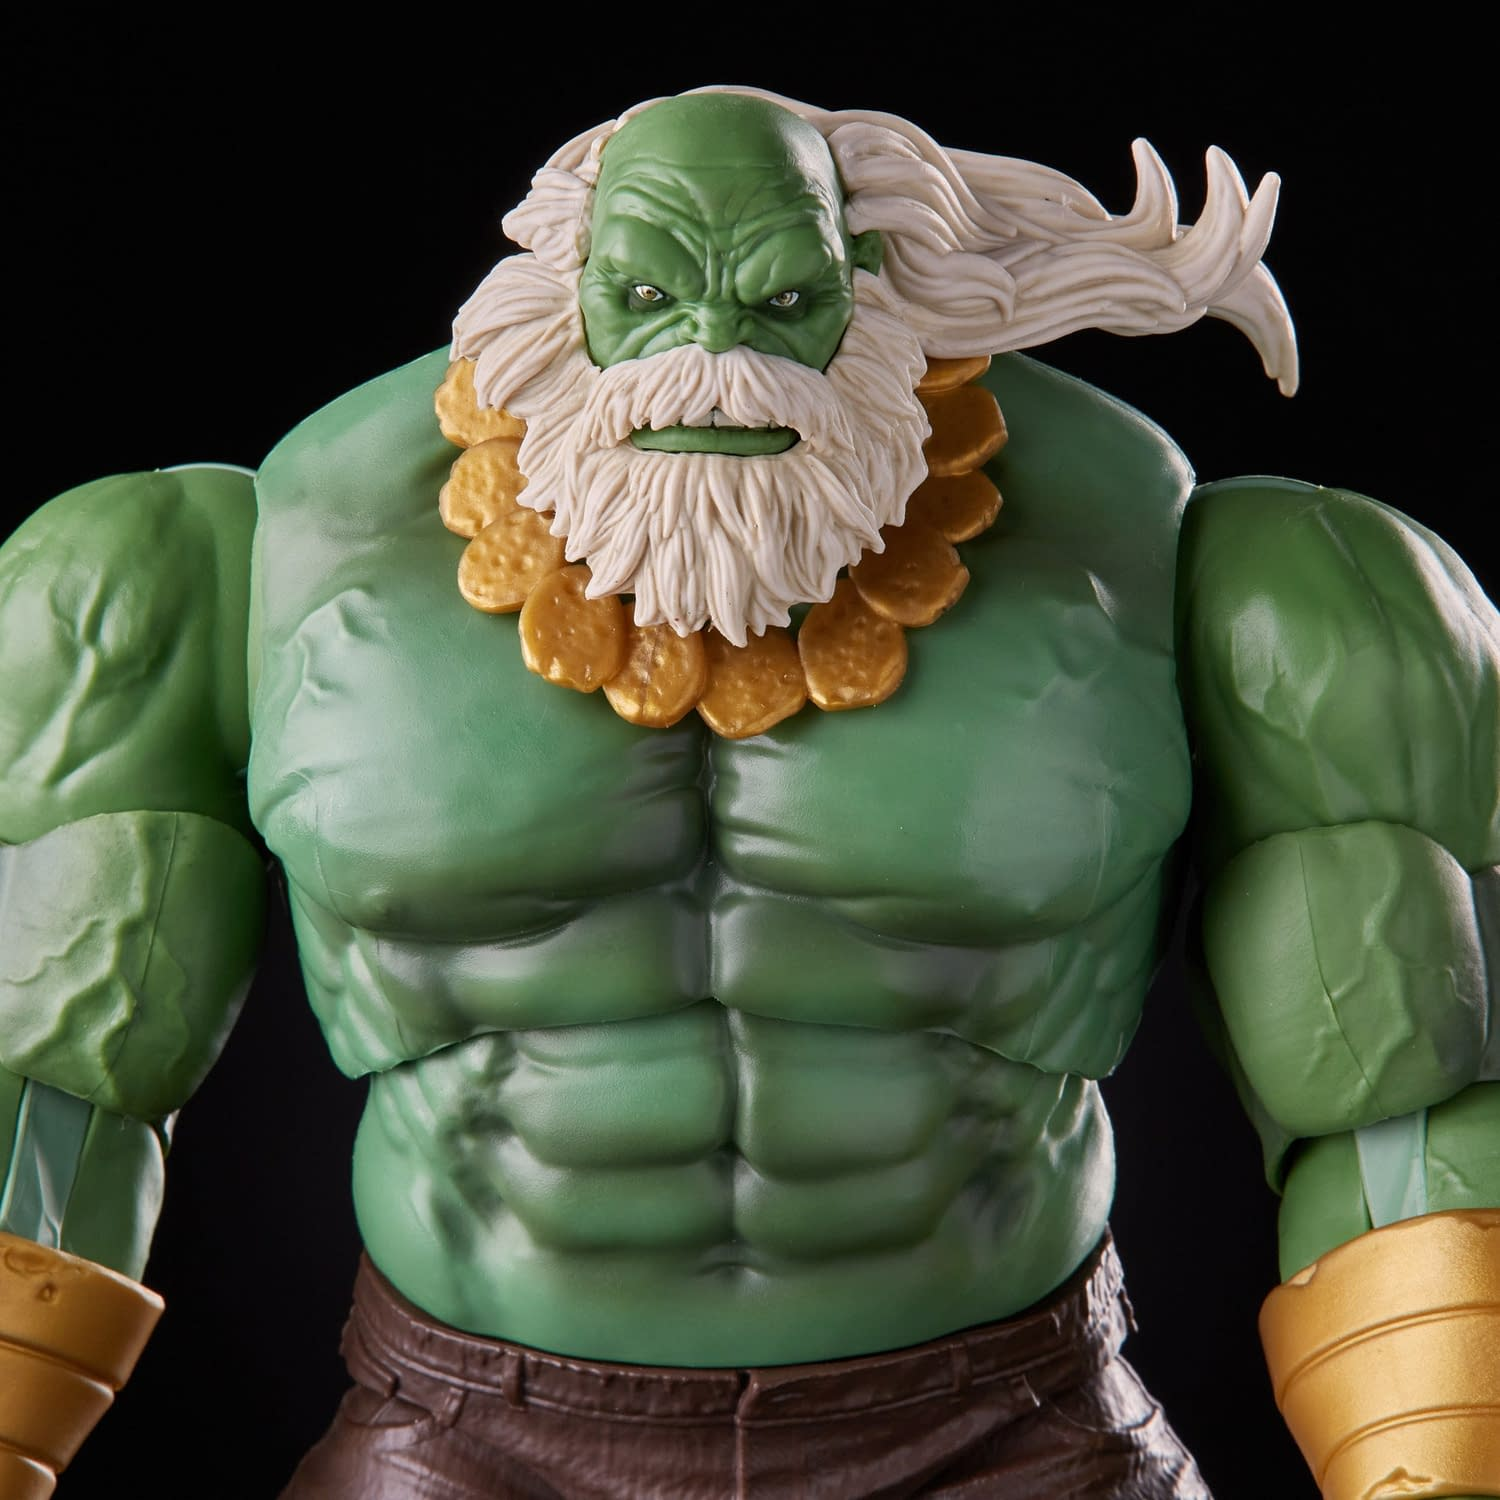 Marvel Legends Maestro Now Available To Order From Hasbro